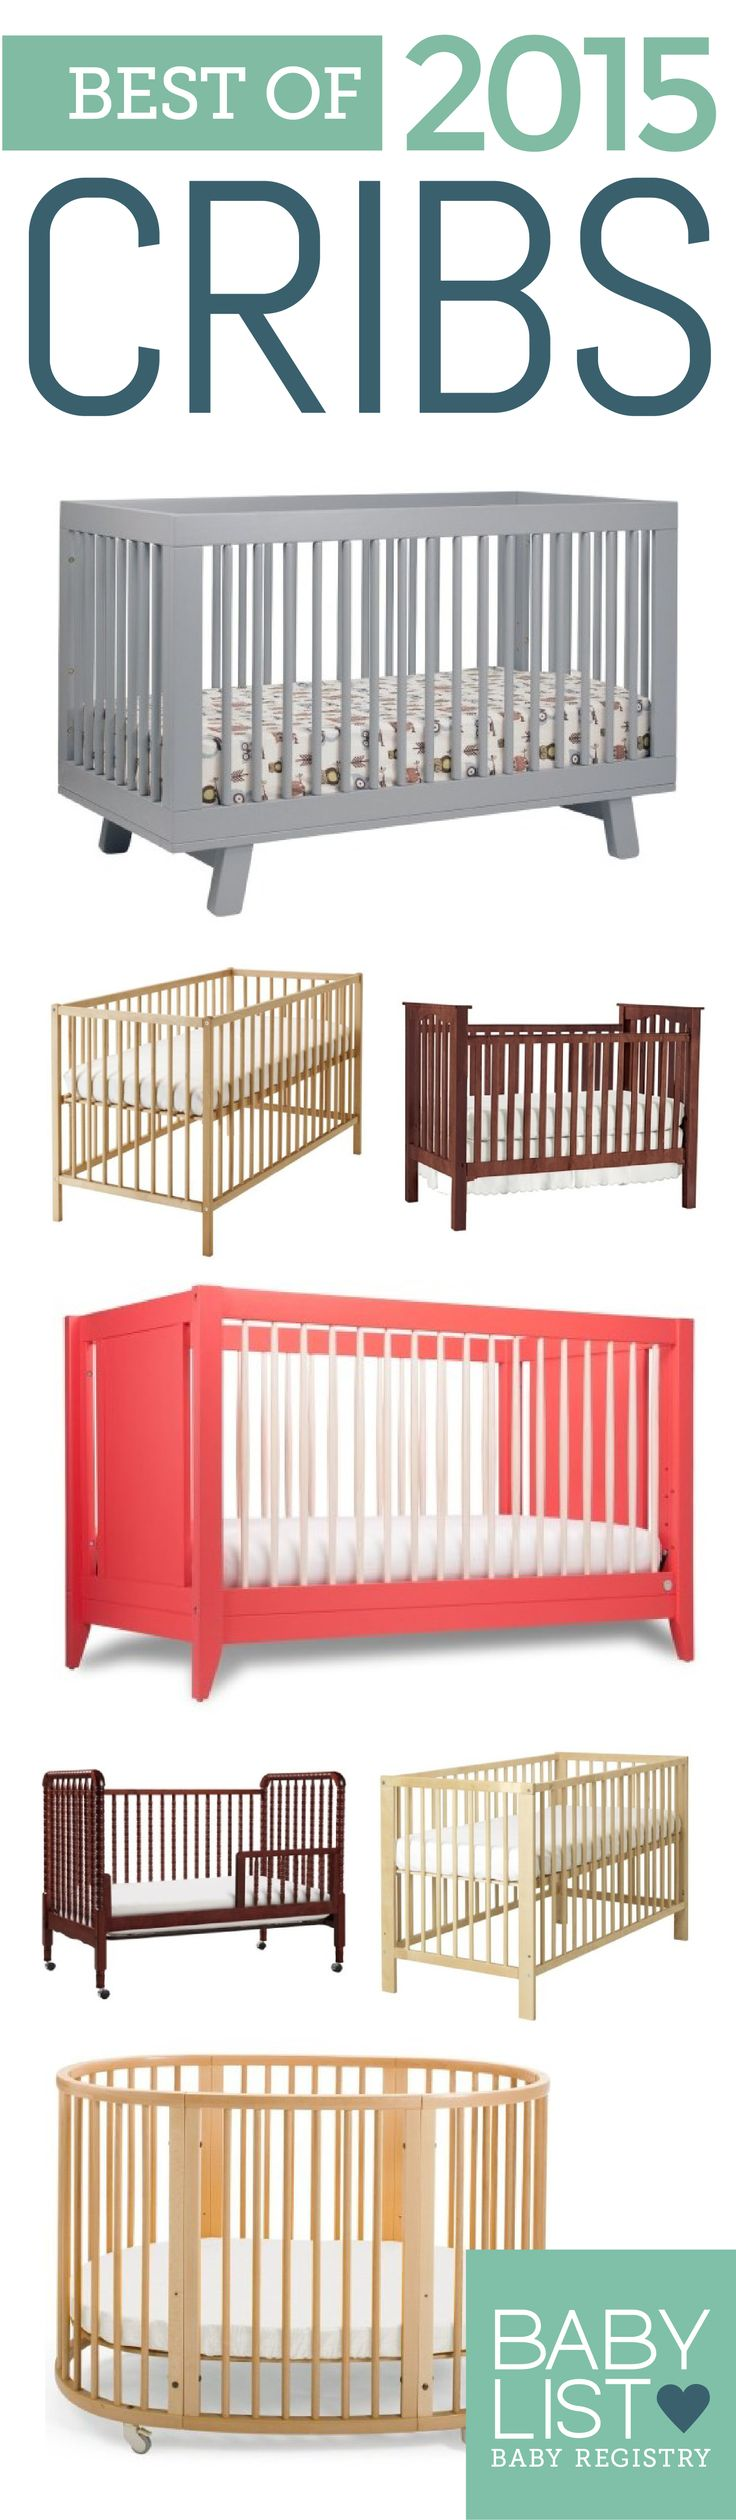 Need some crib advice to help you pick out the best one? Here are the 7 best cribs of 2015 - based on our own research + input from thousands of parents. There's no one must-have crib. Every family is different. Use this guide to help you figure out the best crib for your family's needs and priorities.